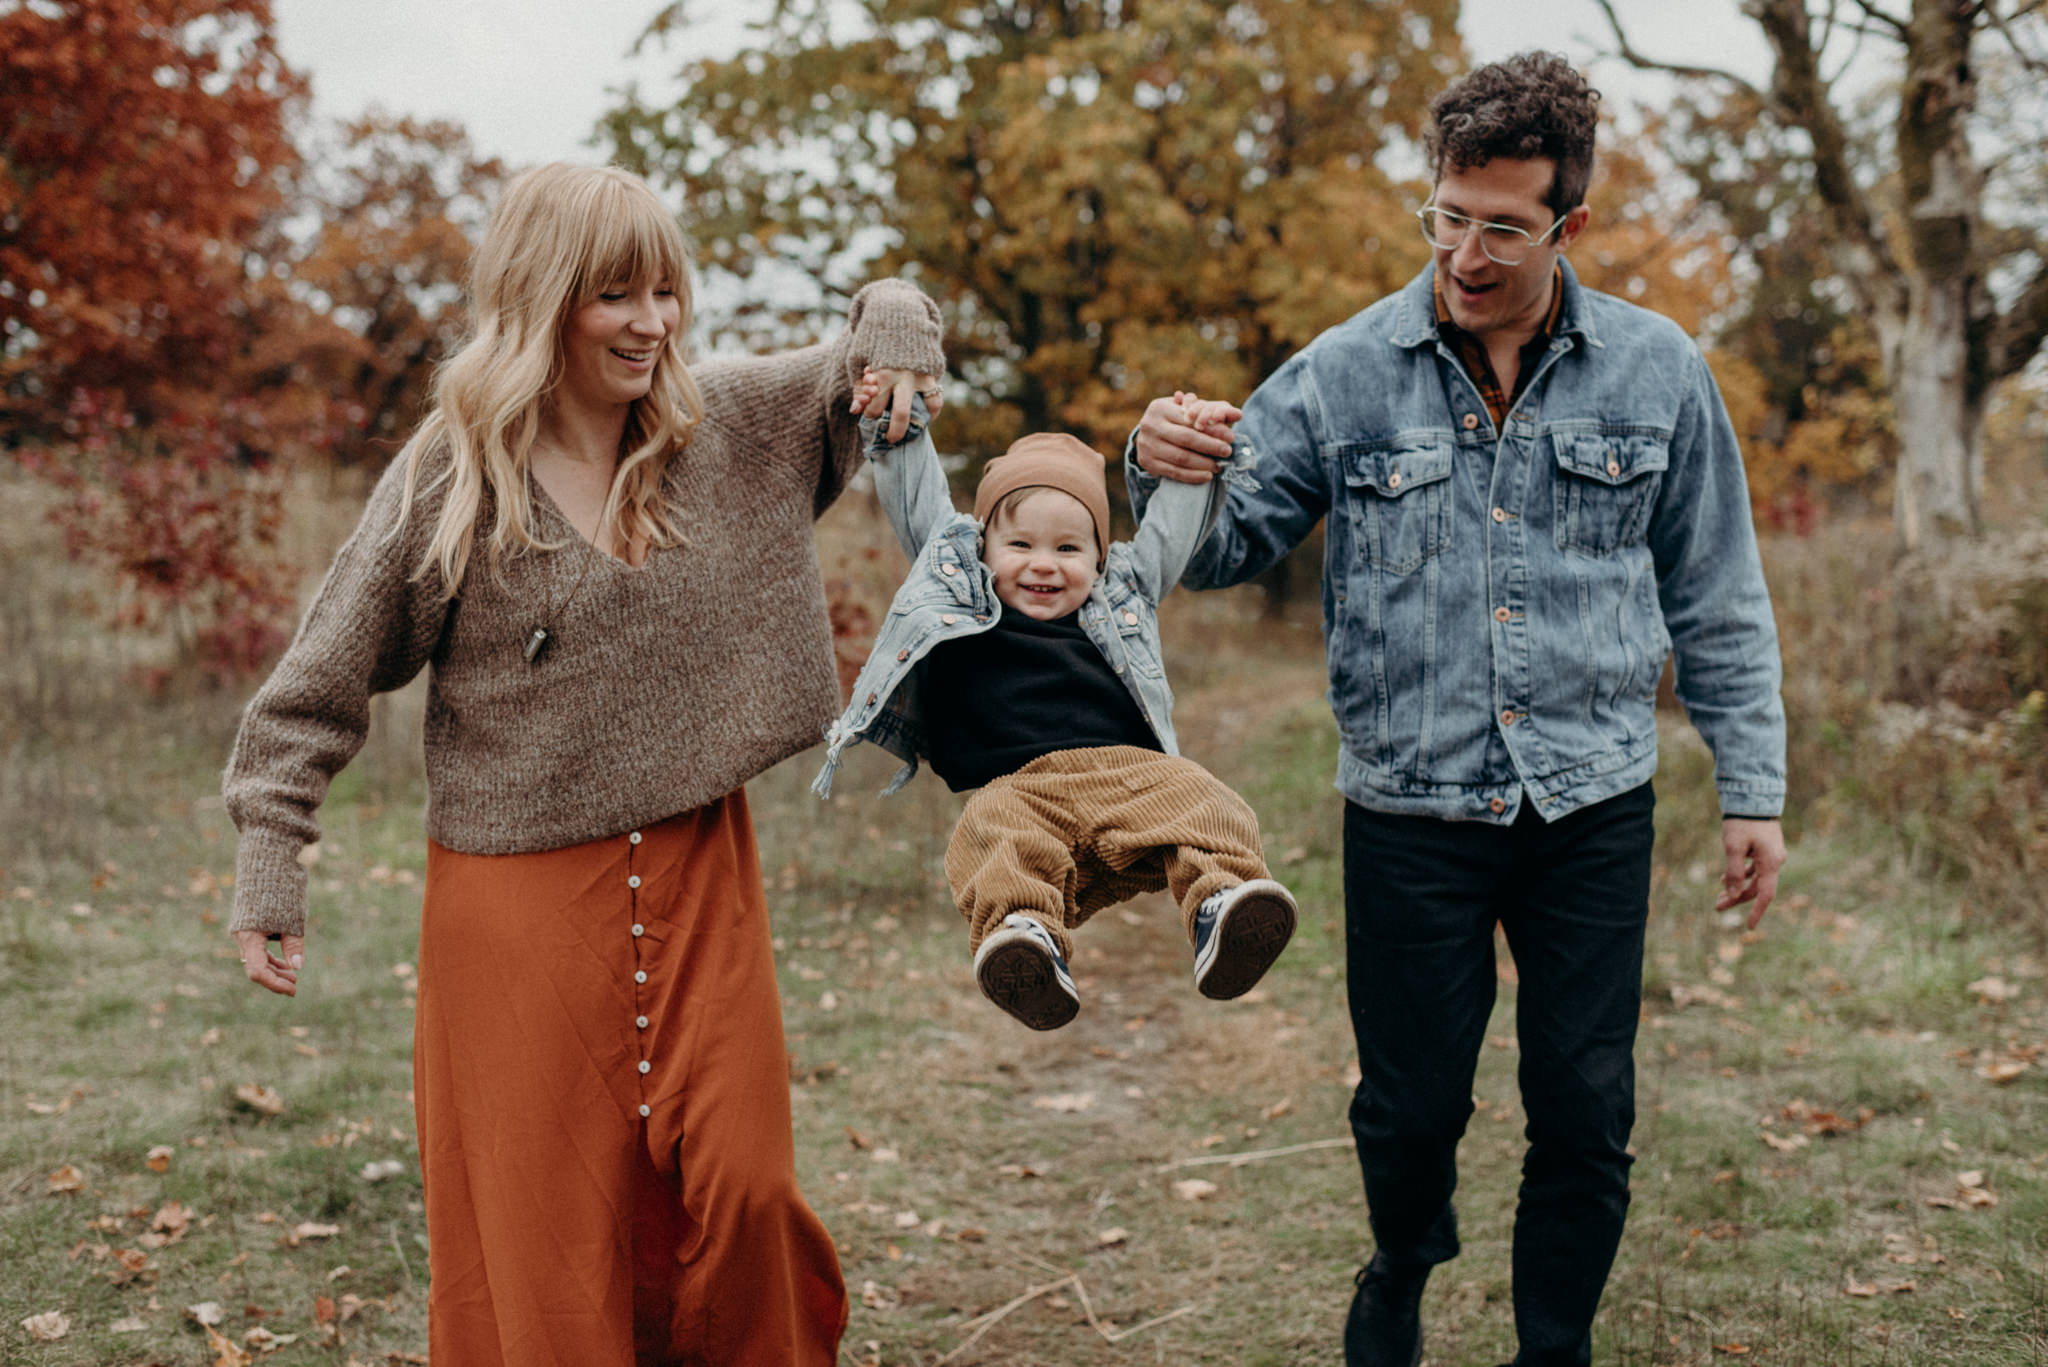 Fun High Park family portraits with Scarlet O'Neill and Anthony Carone